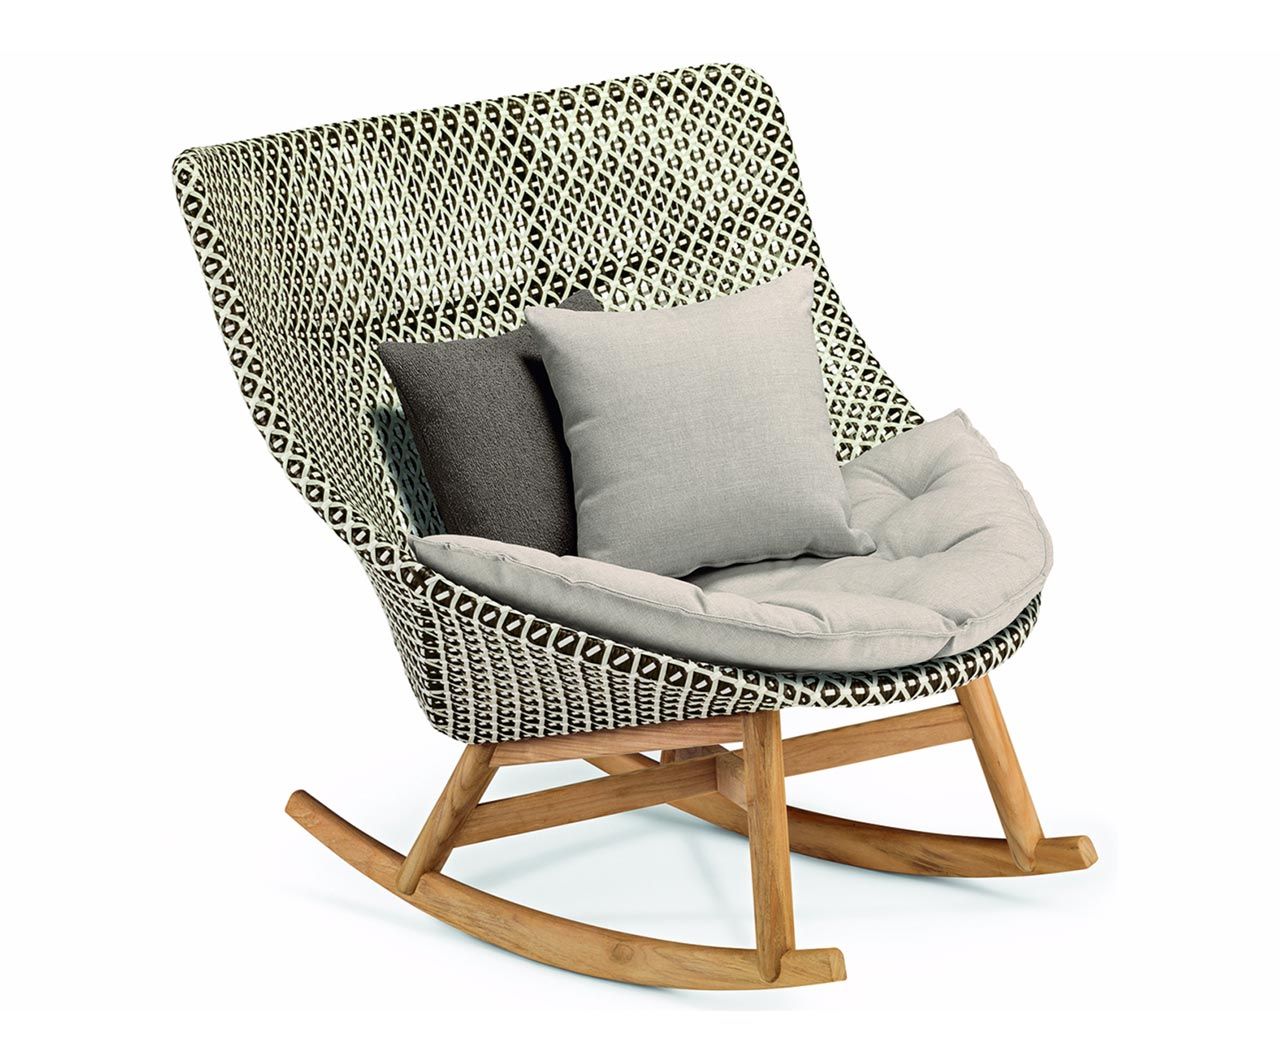 Outdoor Furniture Mbrace By Dedon - Dedon outdoor furniture